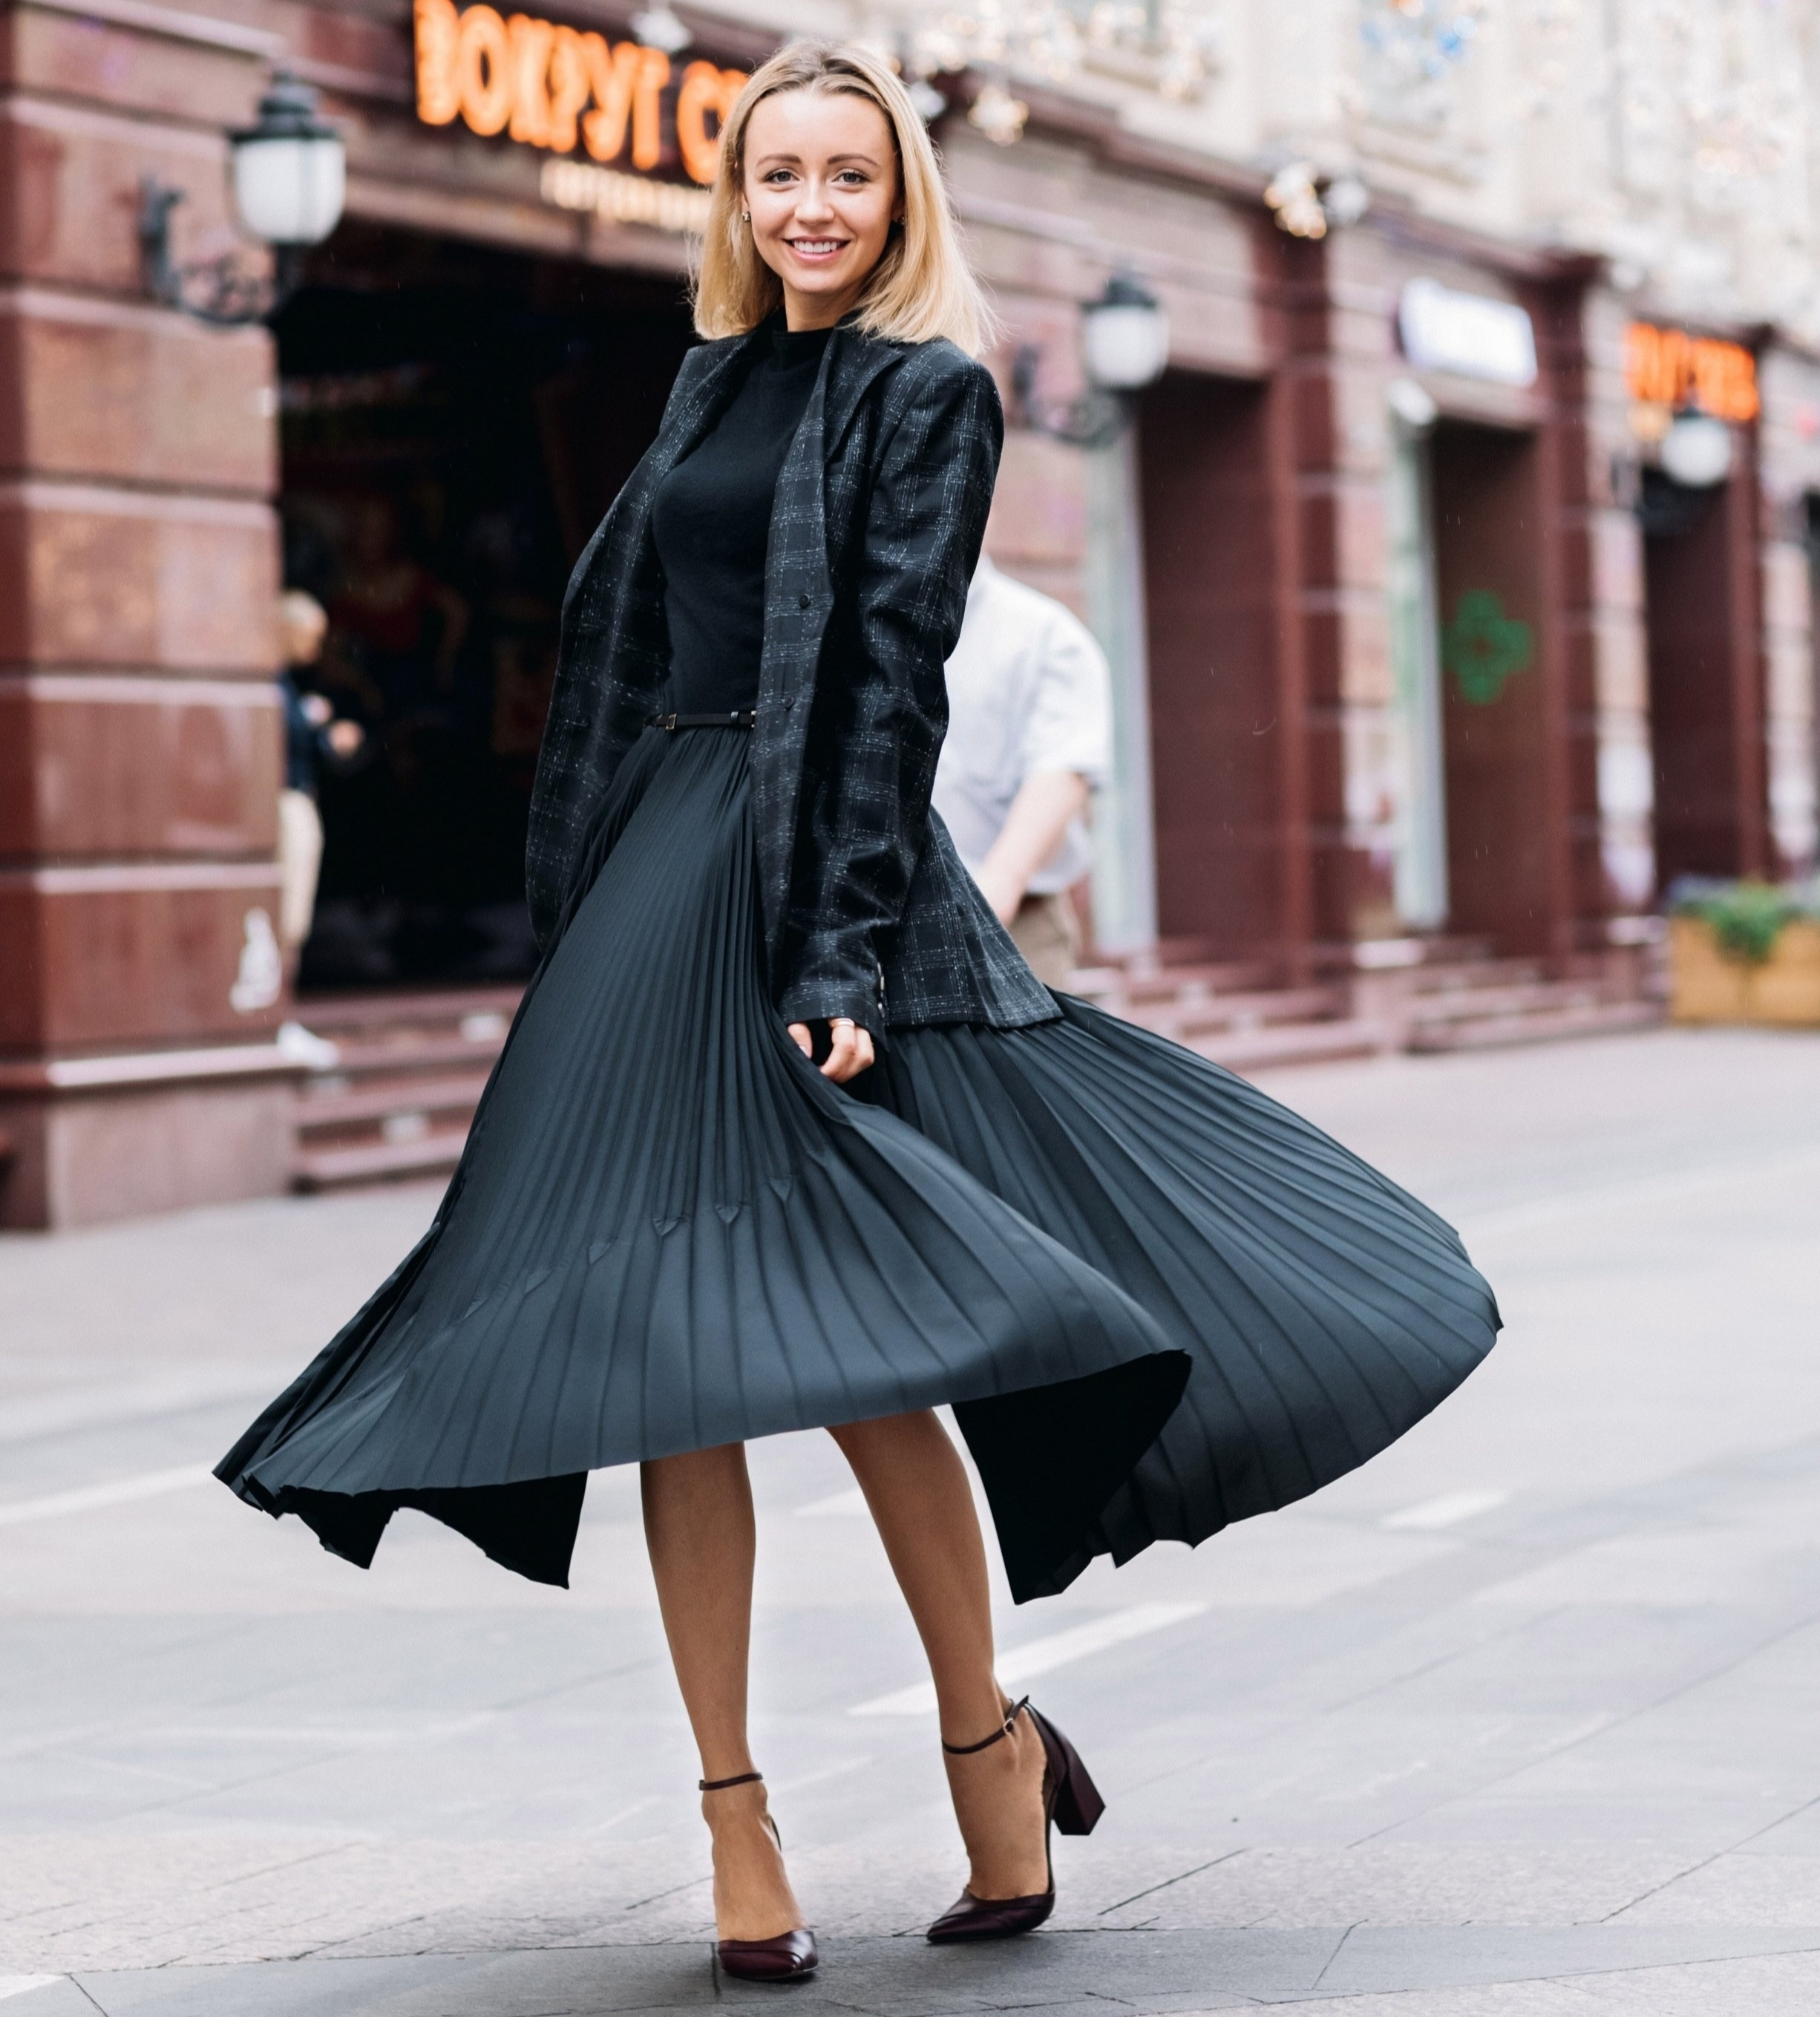 Fashion Lovers - APPLY HERE